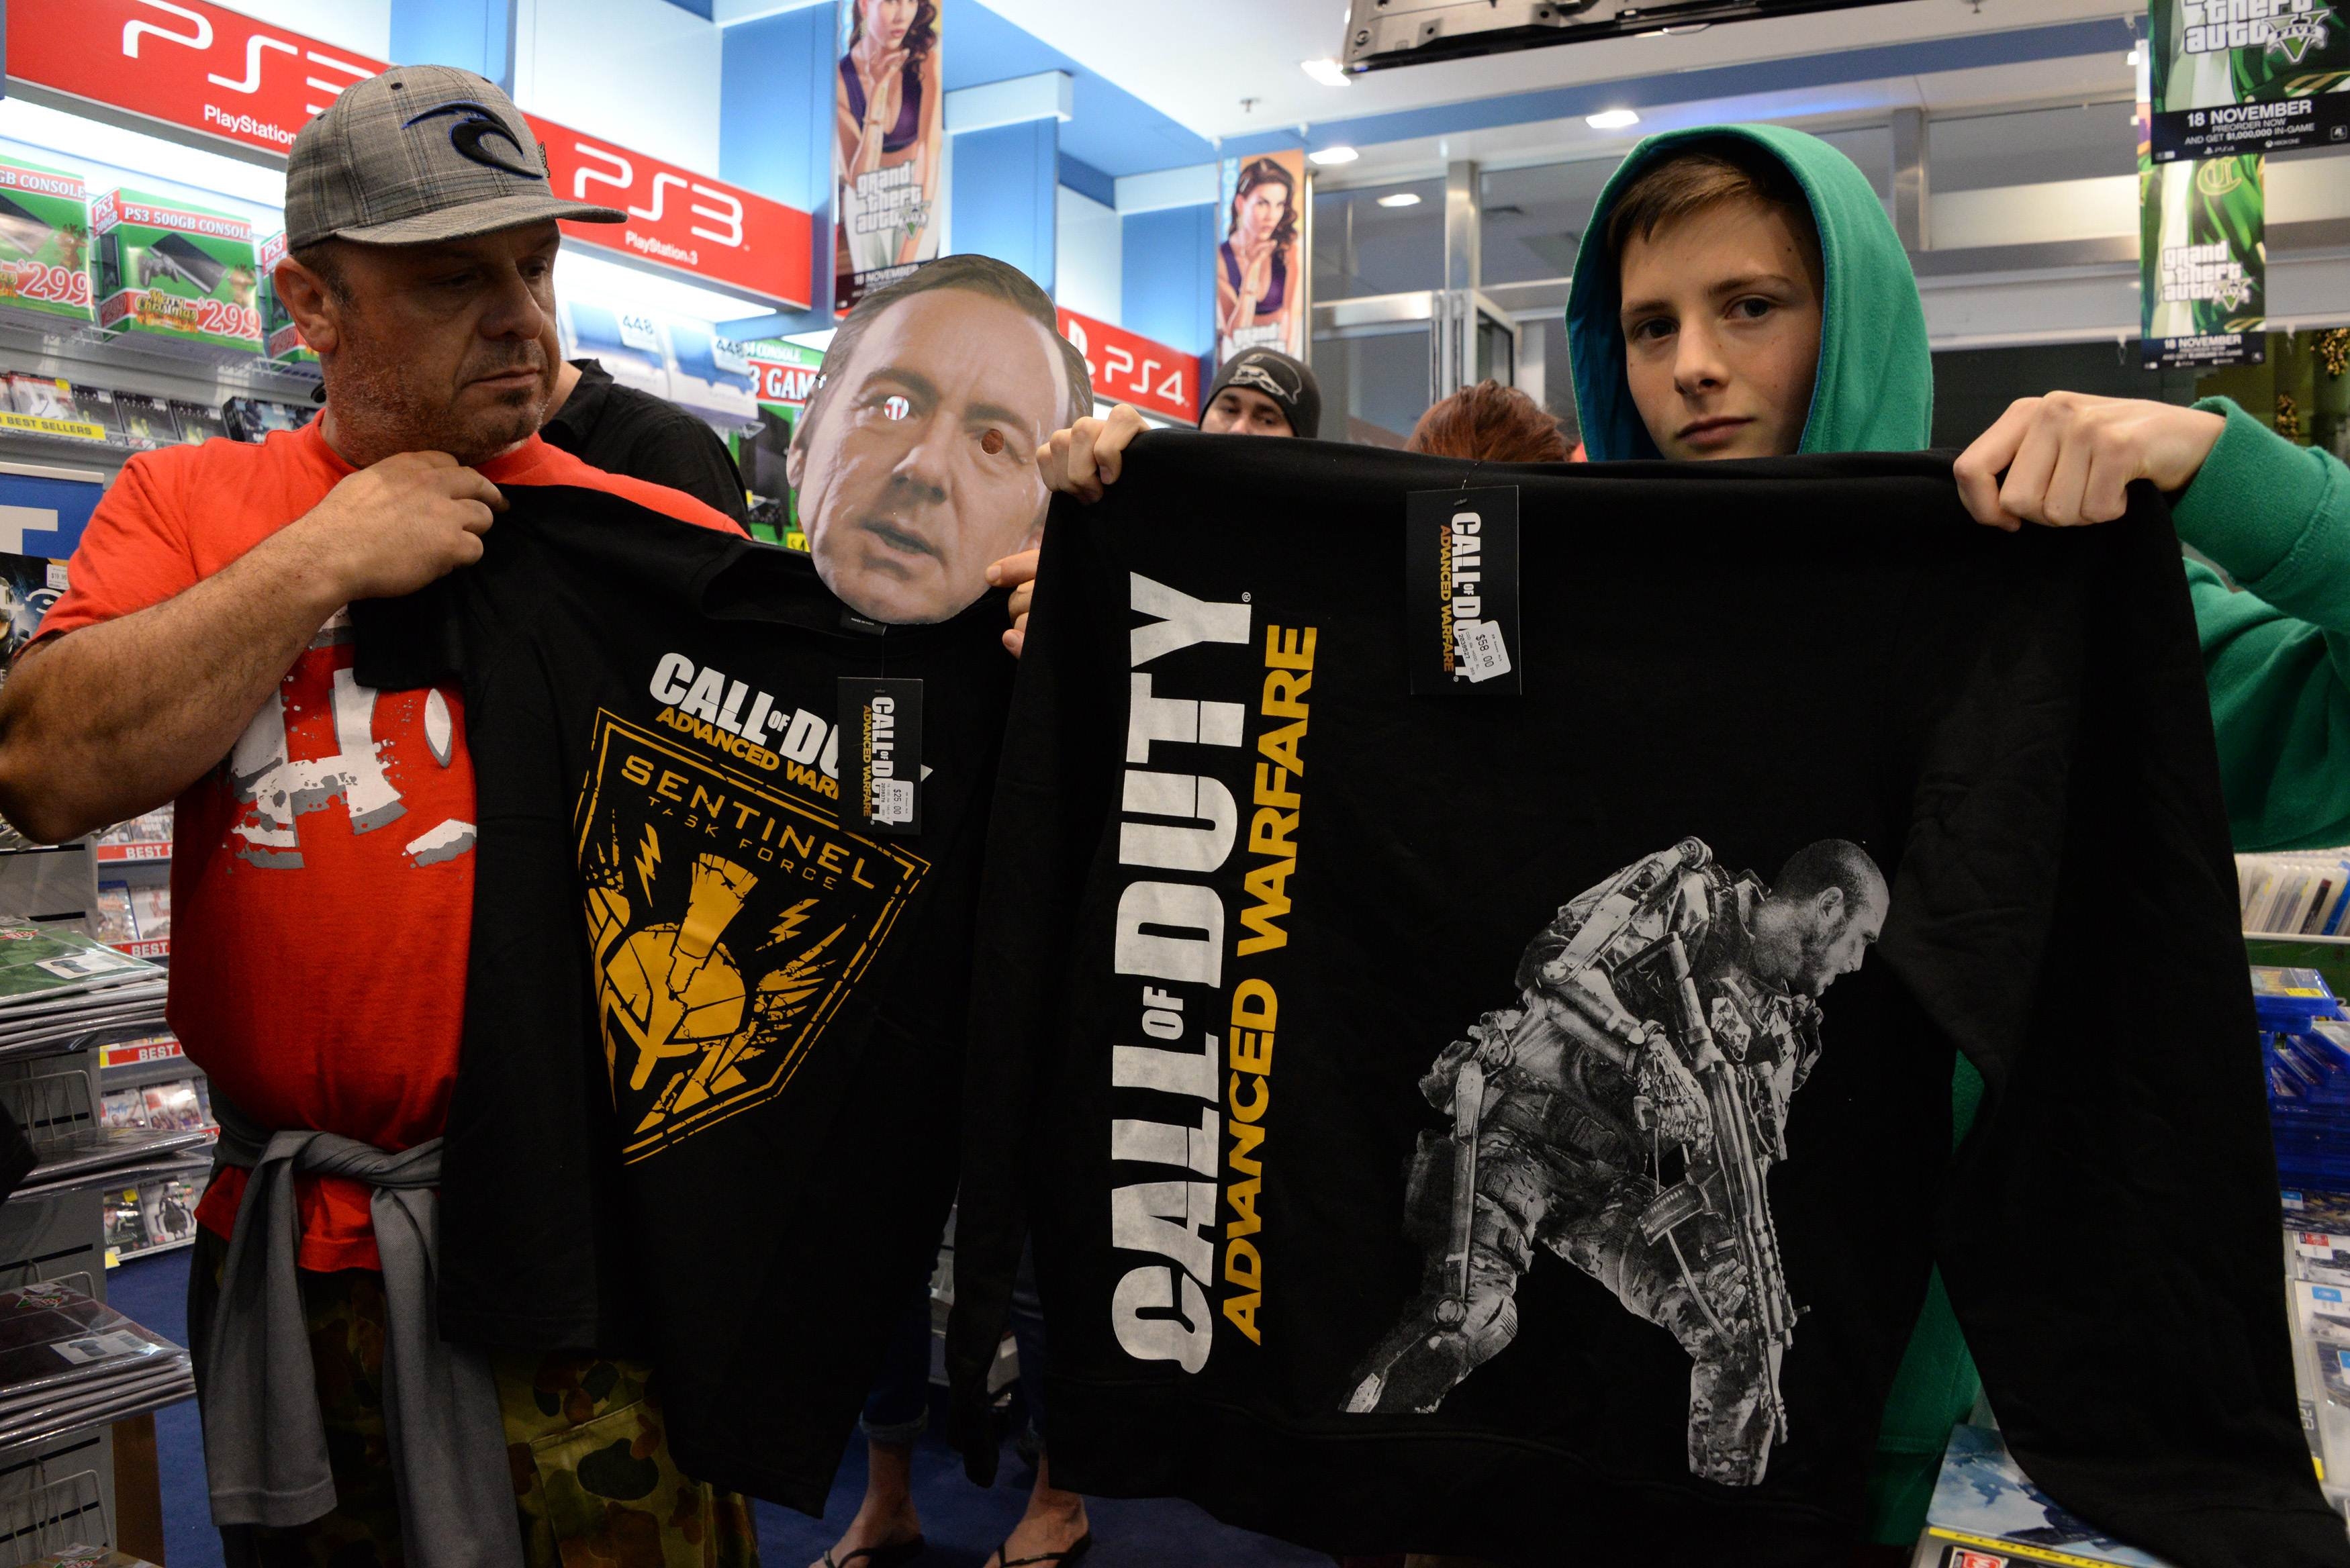 'Call of Duty' soldiers battle Kevin Spacey in latest installment of blockbuster video game ...